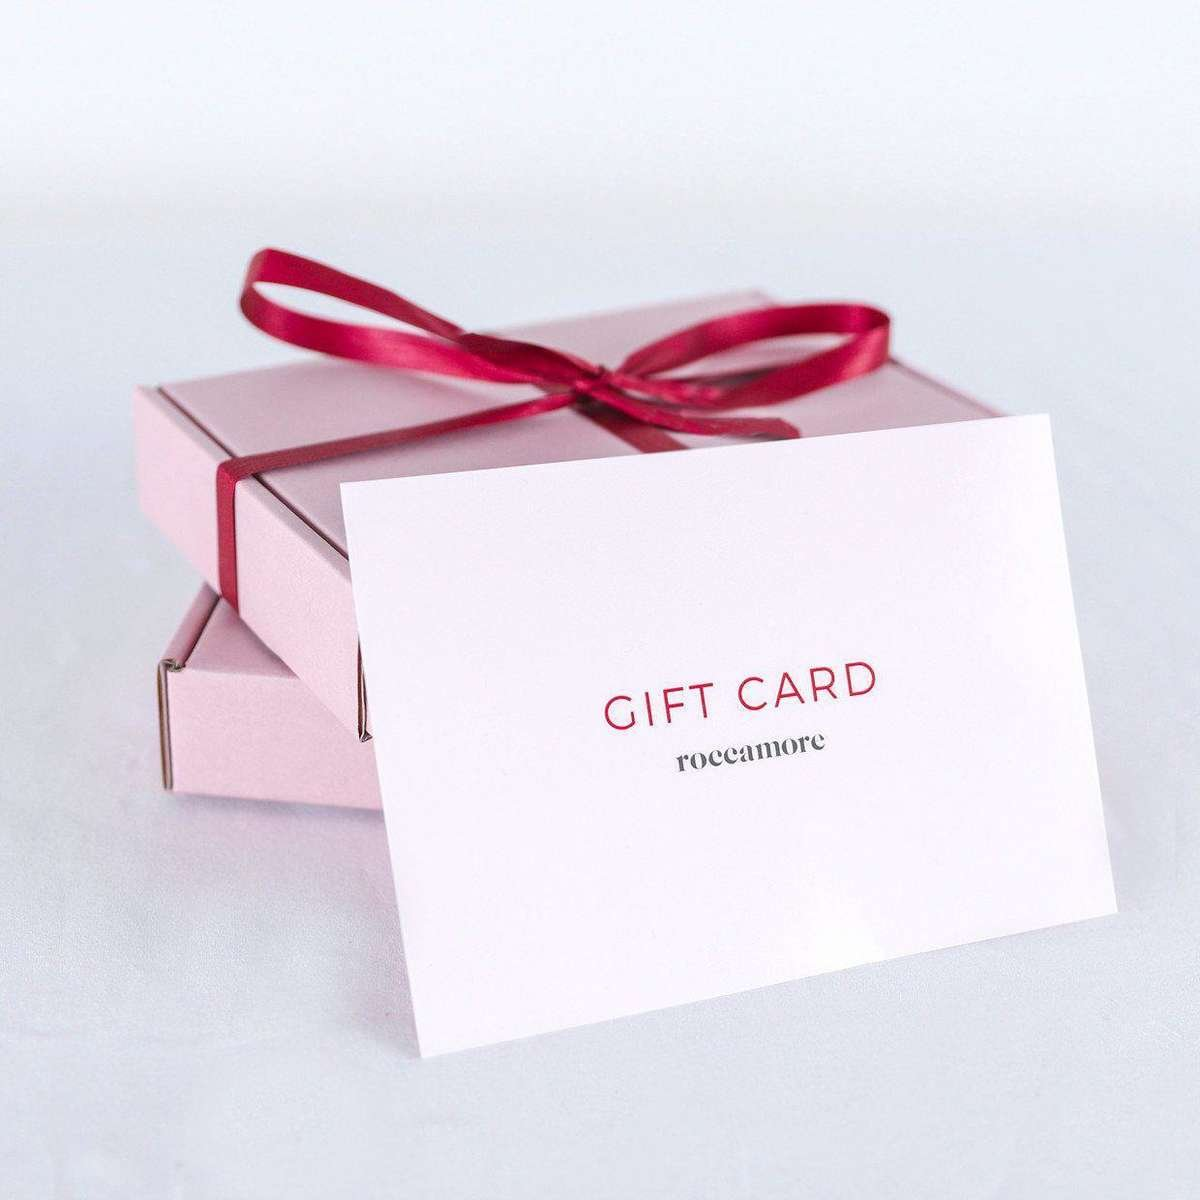 roccamore-gift-card-easy-gift-for-her